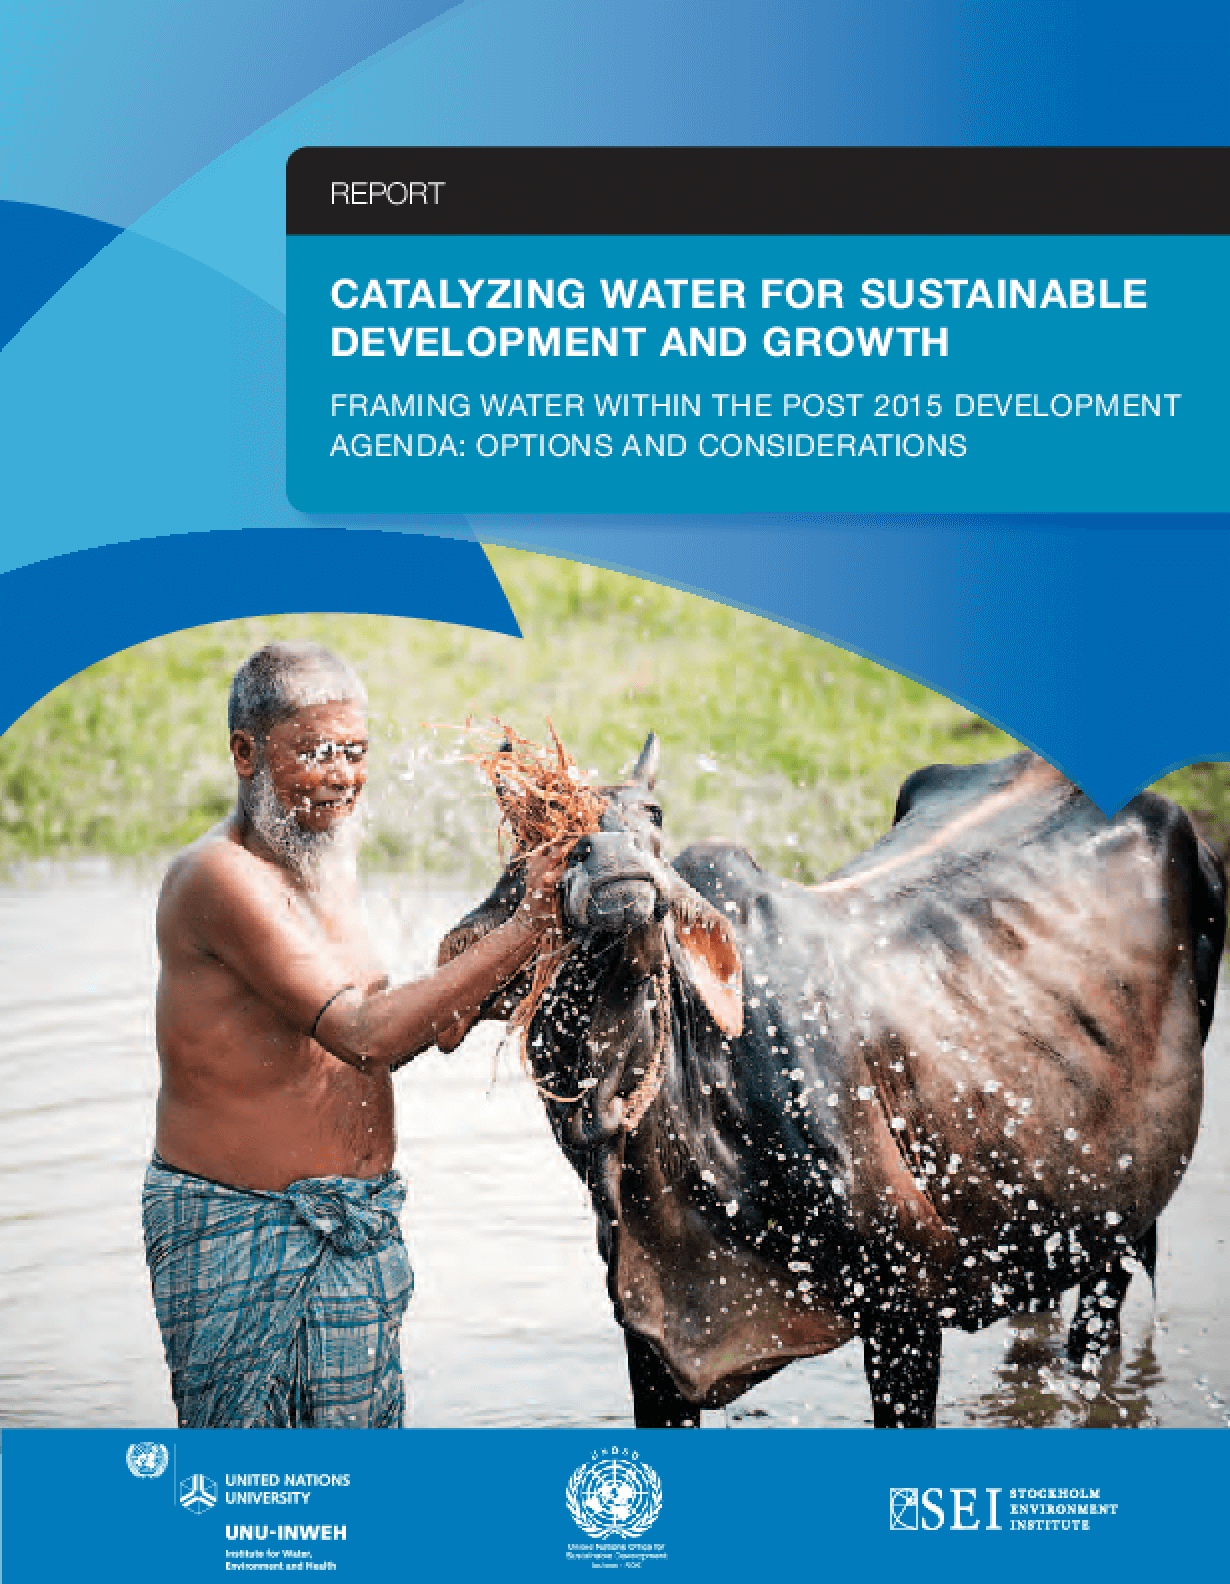 Catalyzing Water for Sustainable Development and Growth